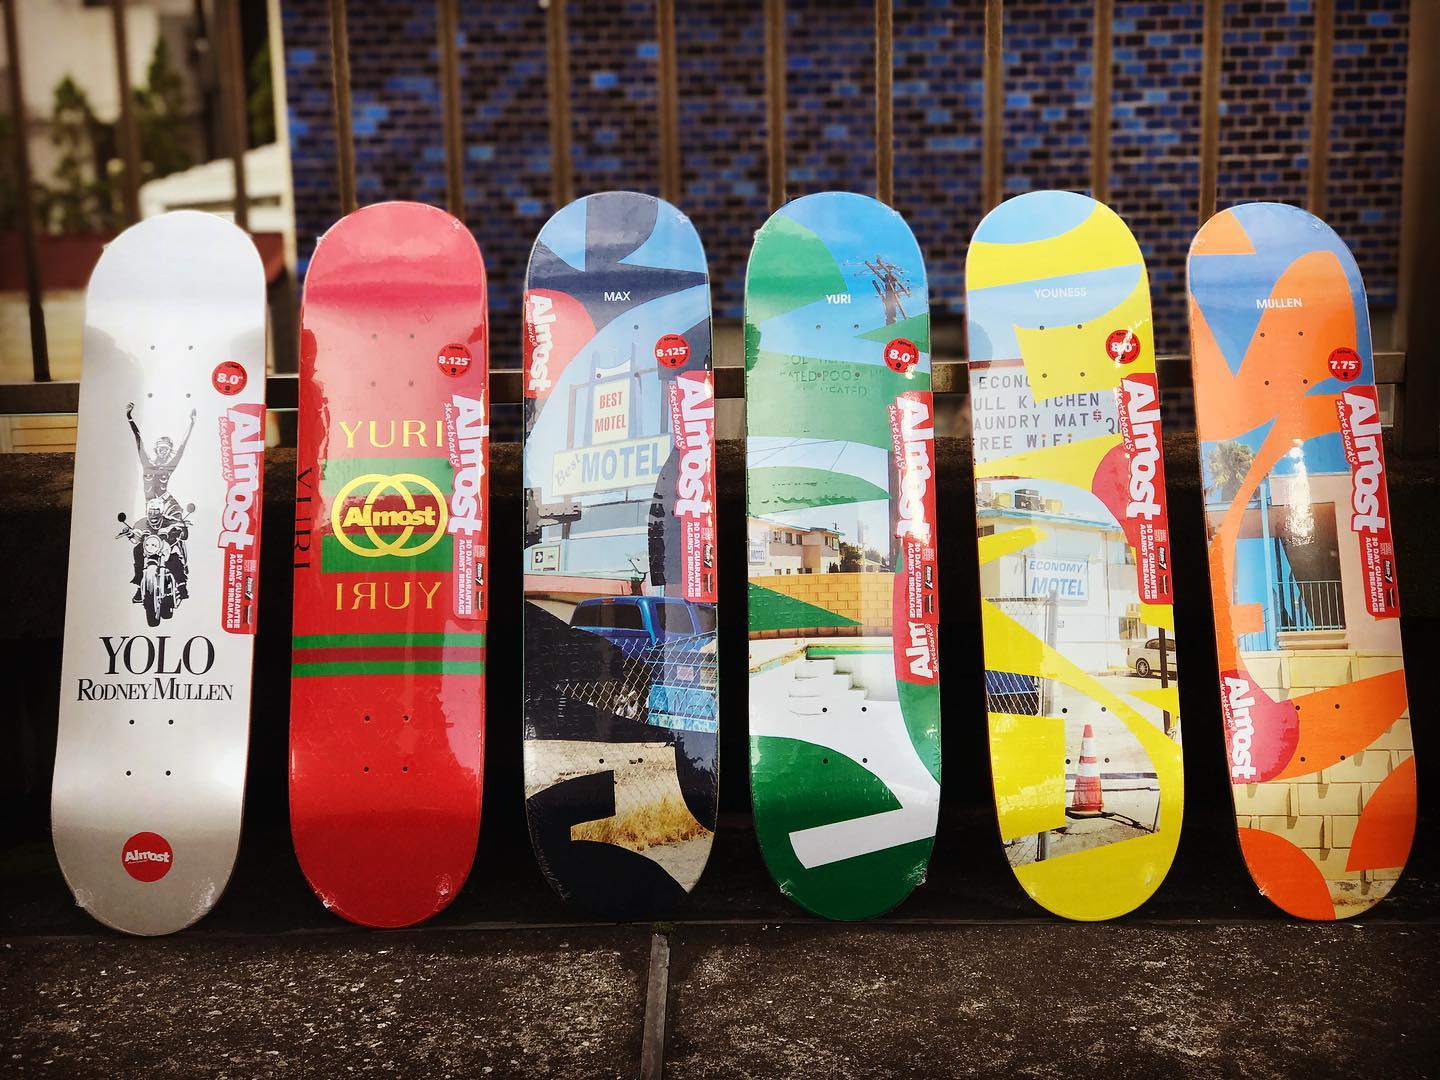 ・New @almostskateboards decks.